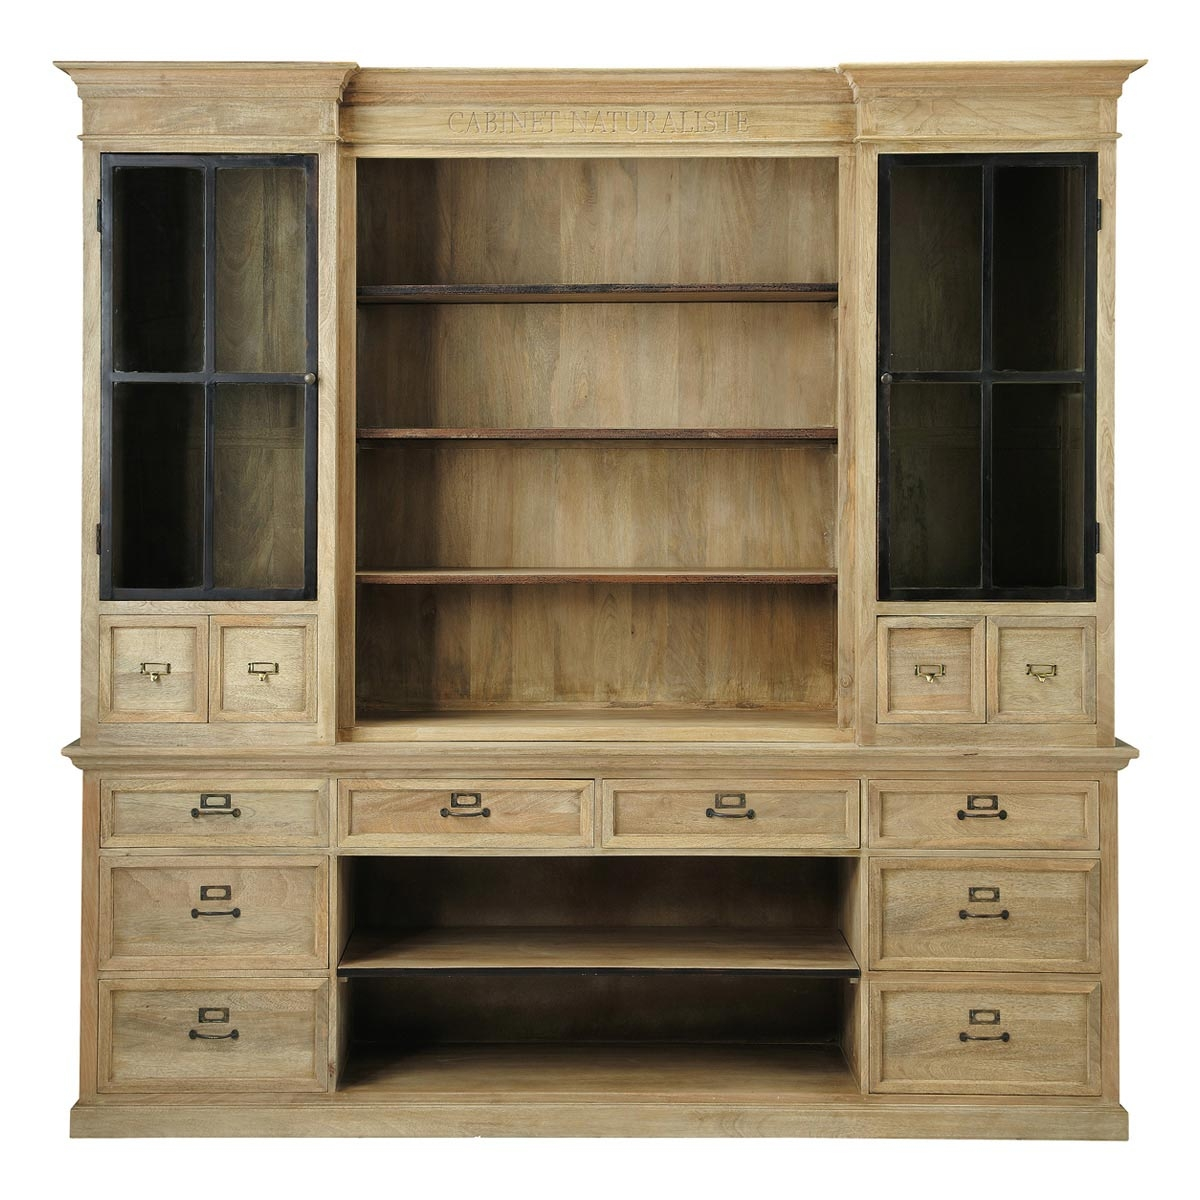 Find Wood Bookcases For Your Precious Collection Of Books Throughout Wooden Bookcases (#4 of 15)